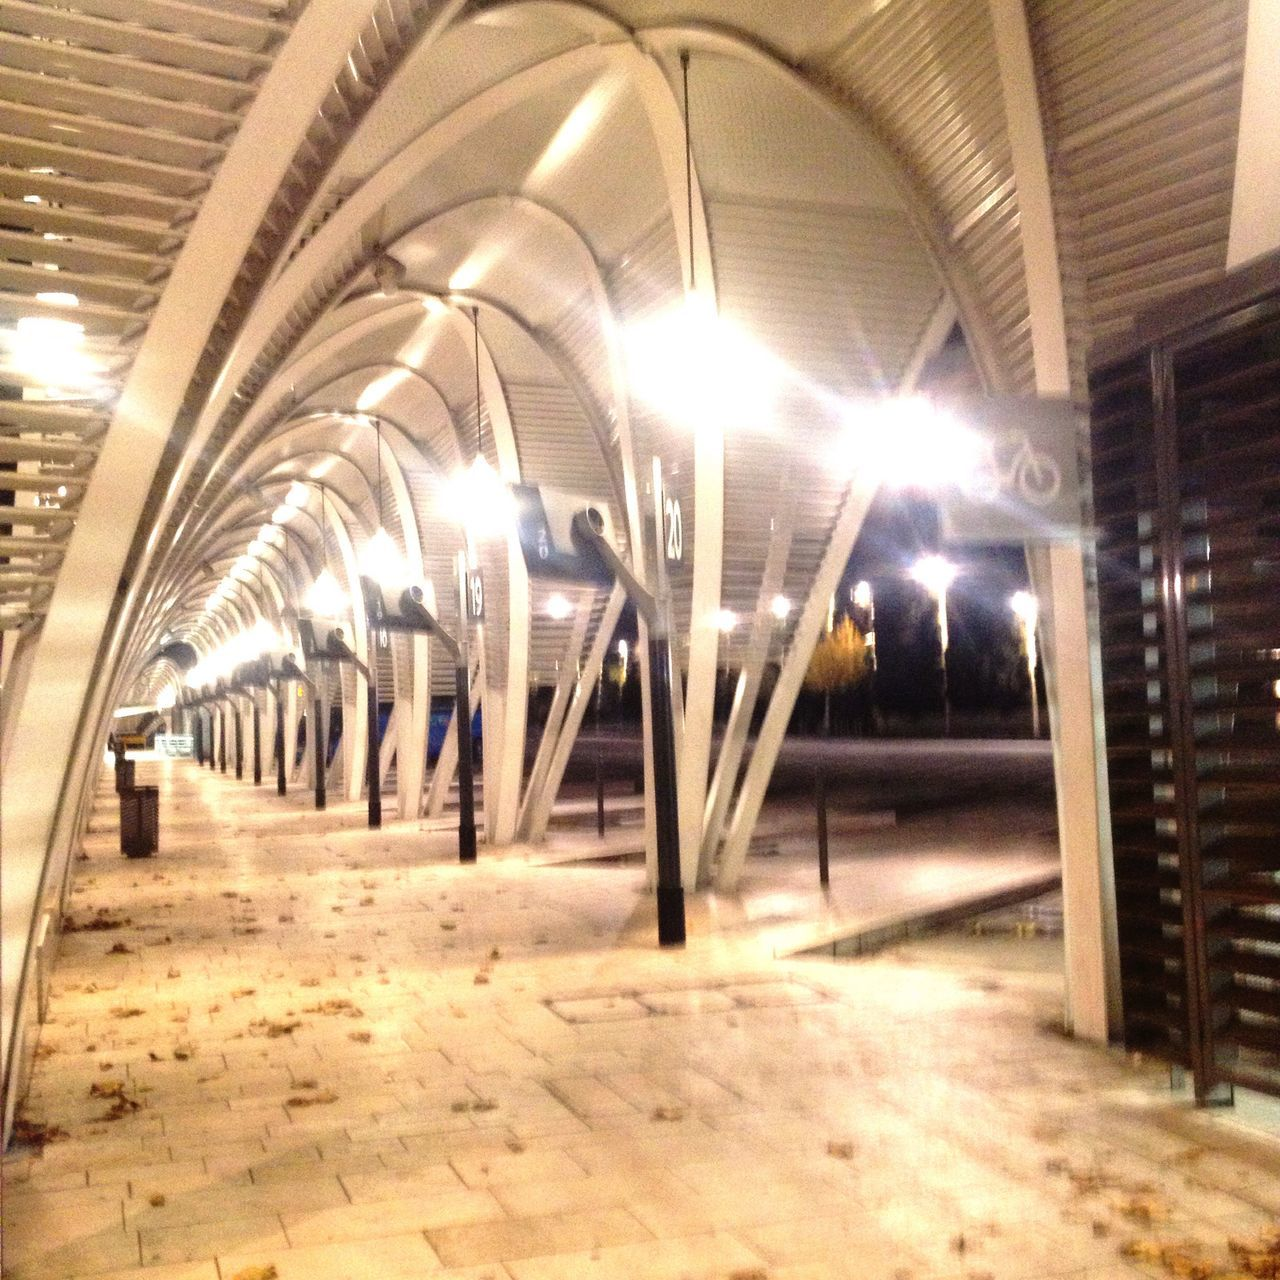 illuminated, indoors, ceiling, empty, the way forward, lighting equipment, arch, architecture, tunnel, no people, night